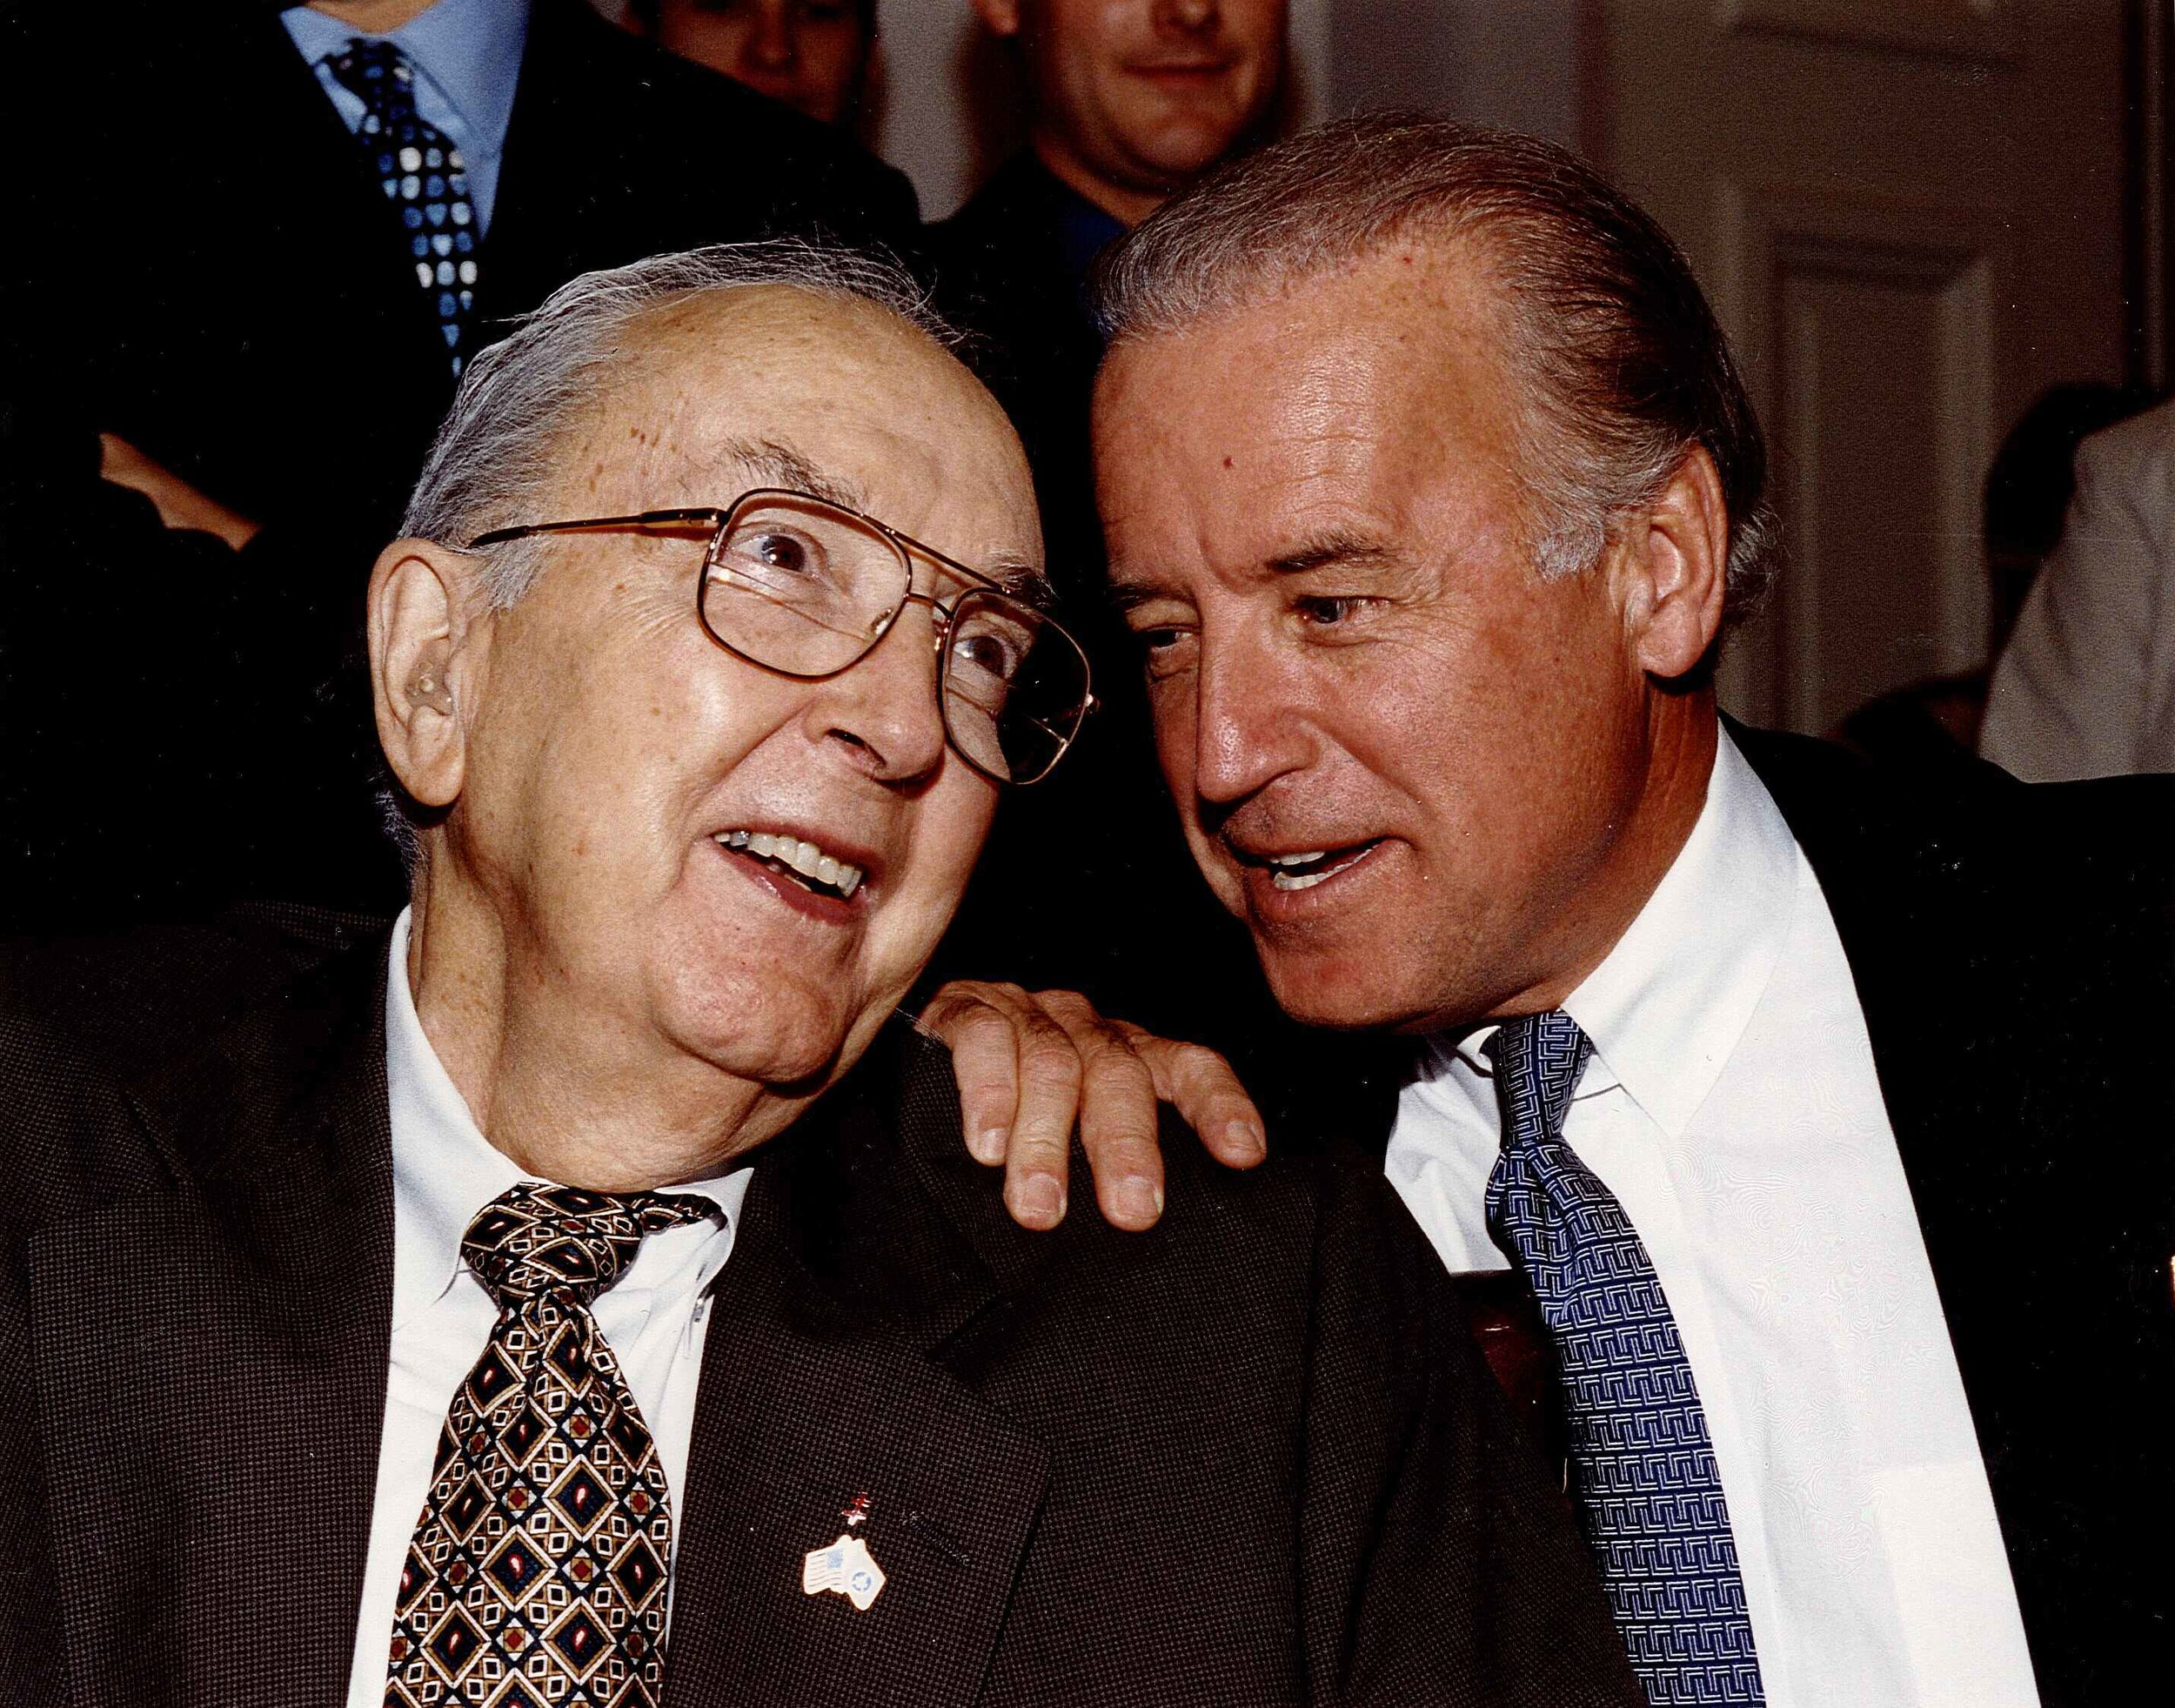 Senator Helms and Senator Biden worked closely together on the Senate Foreign Relations Committee.